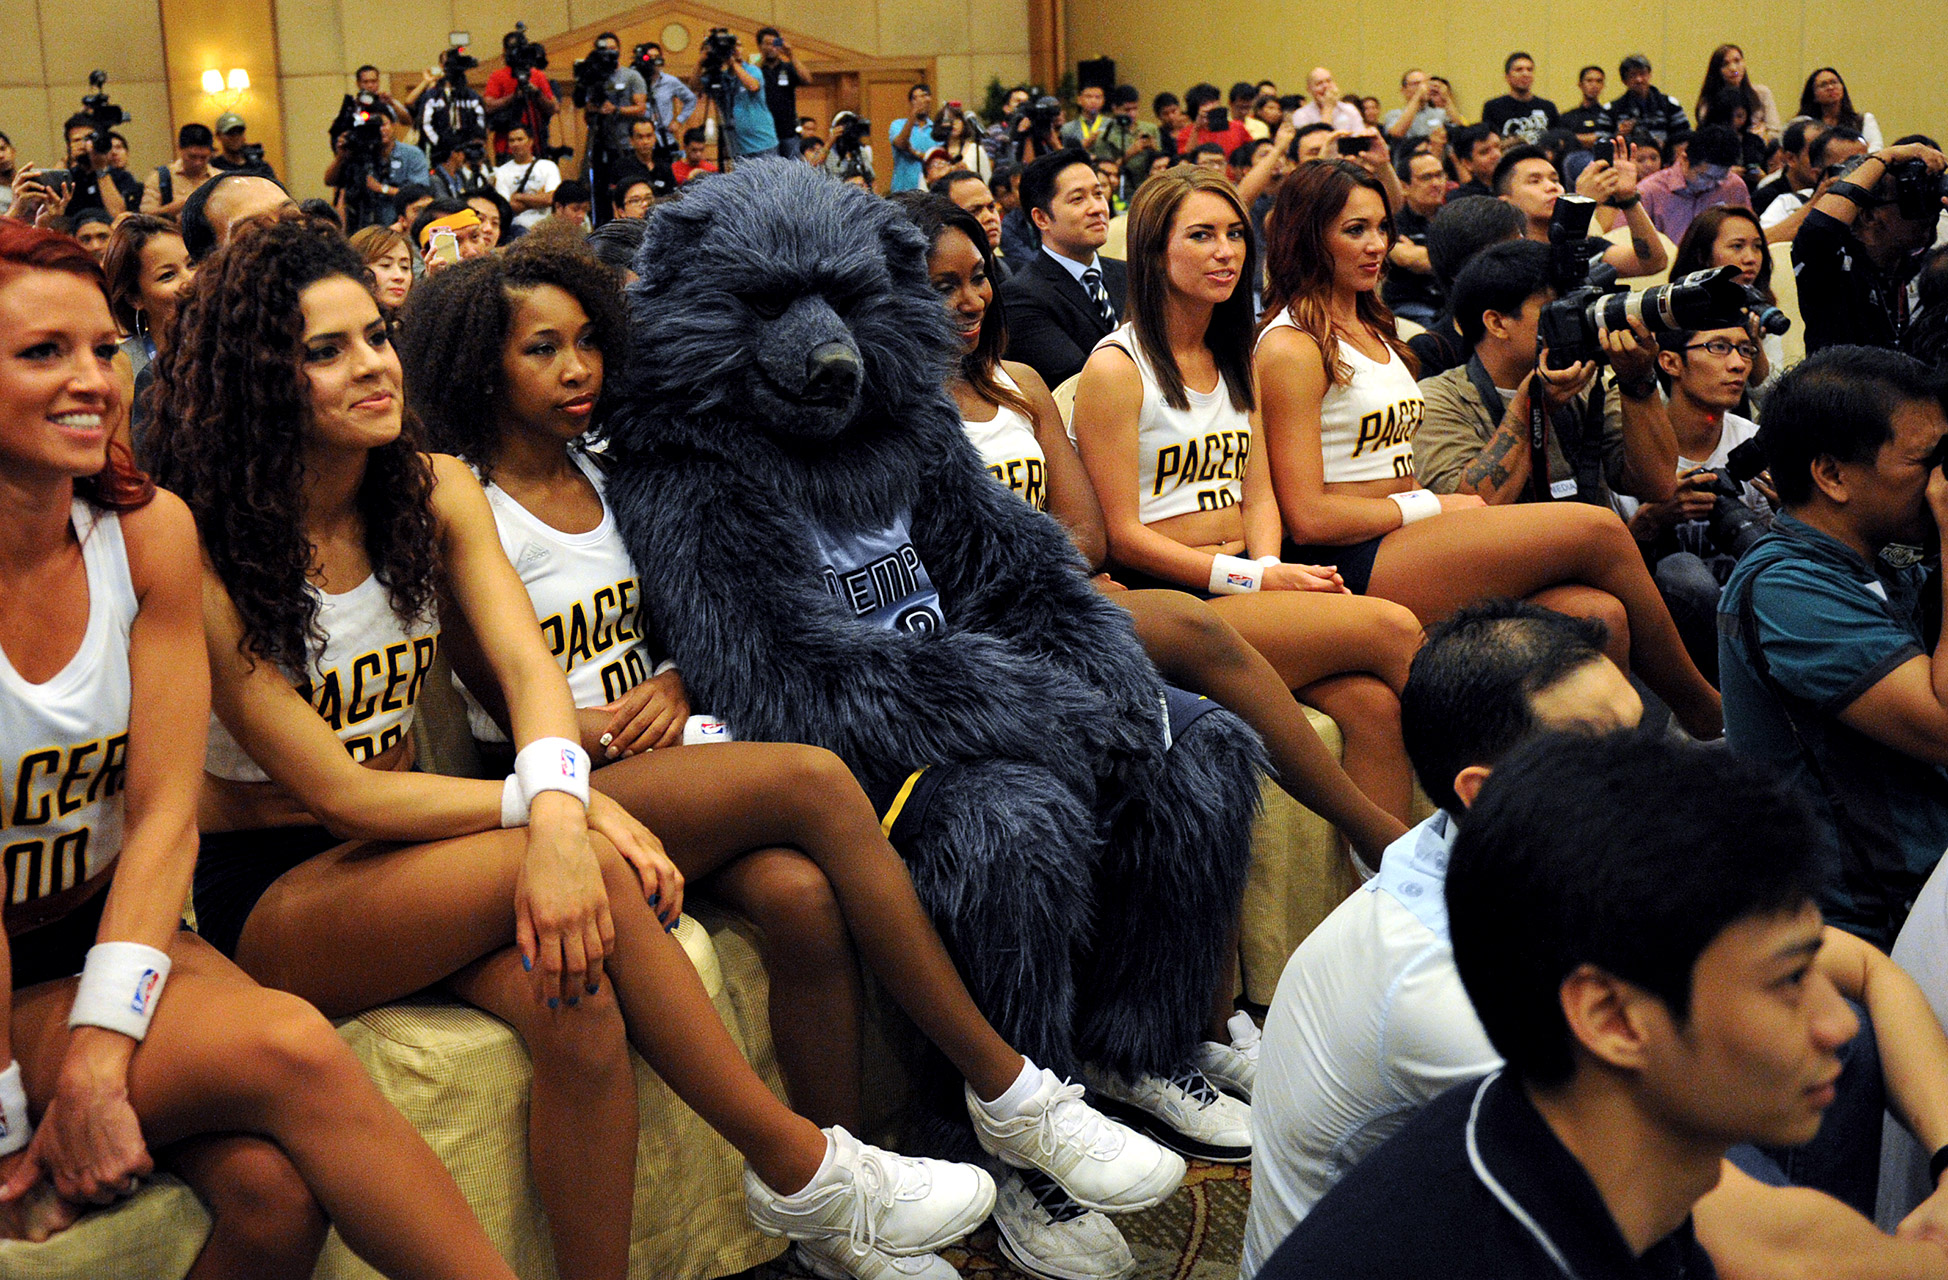 Pacemates and Grizz